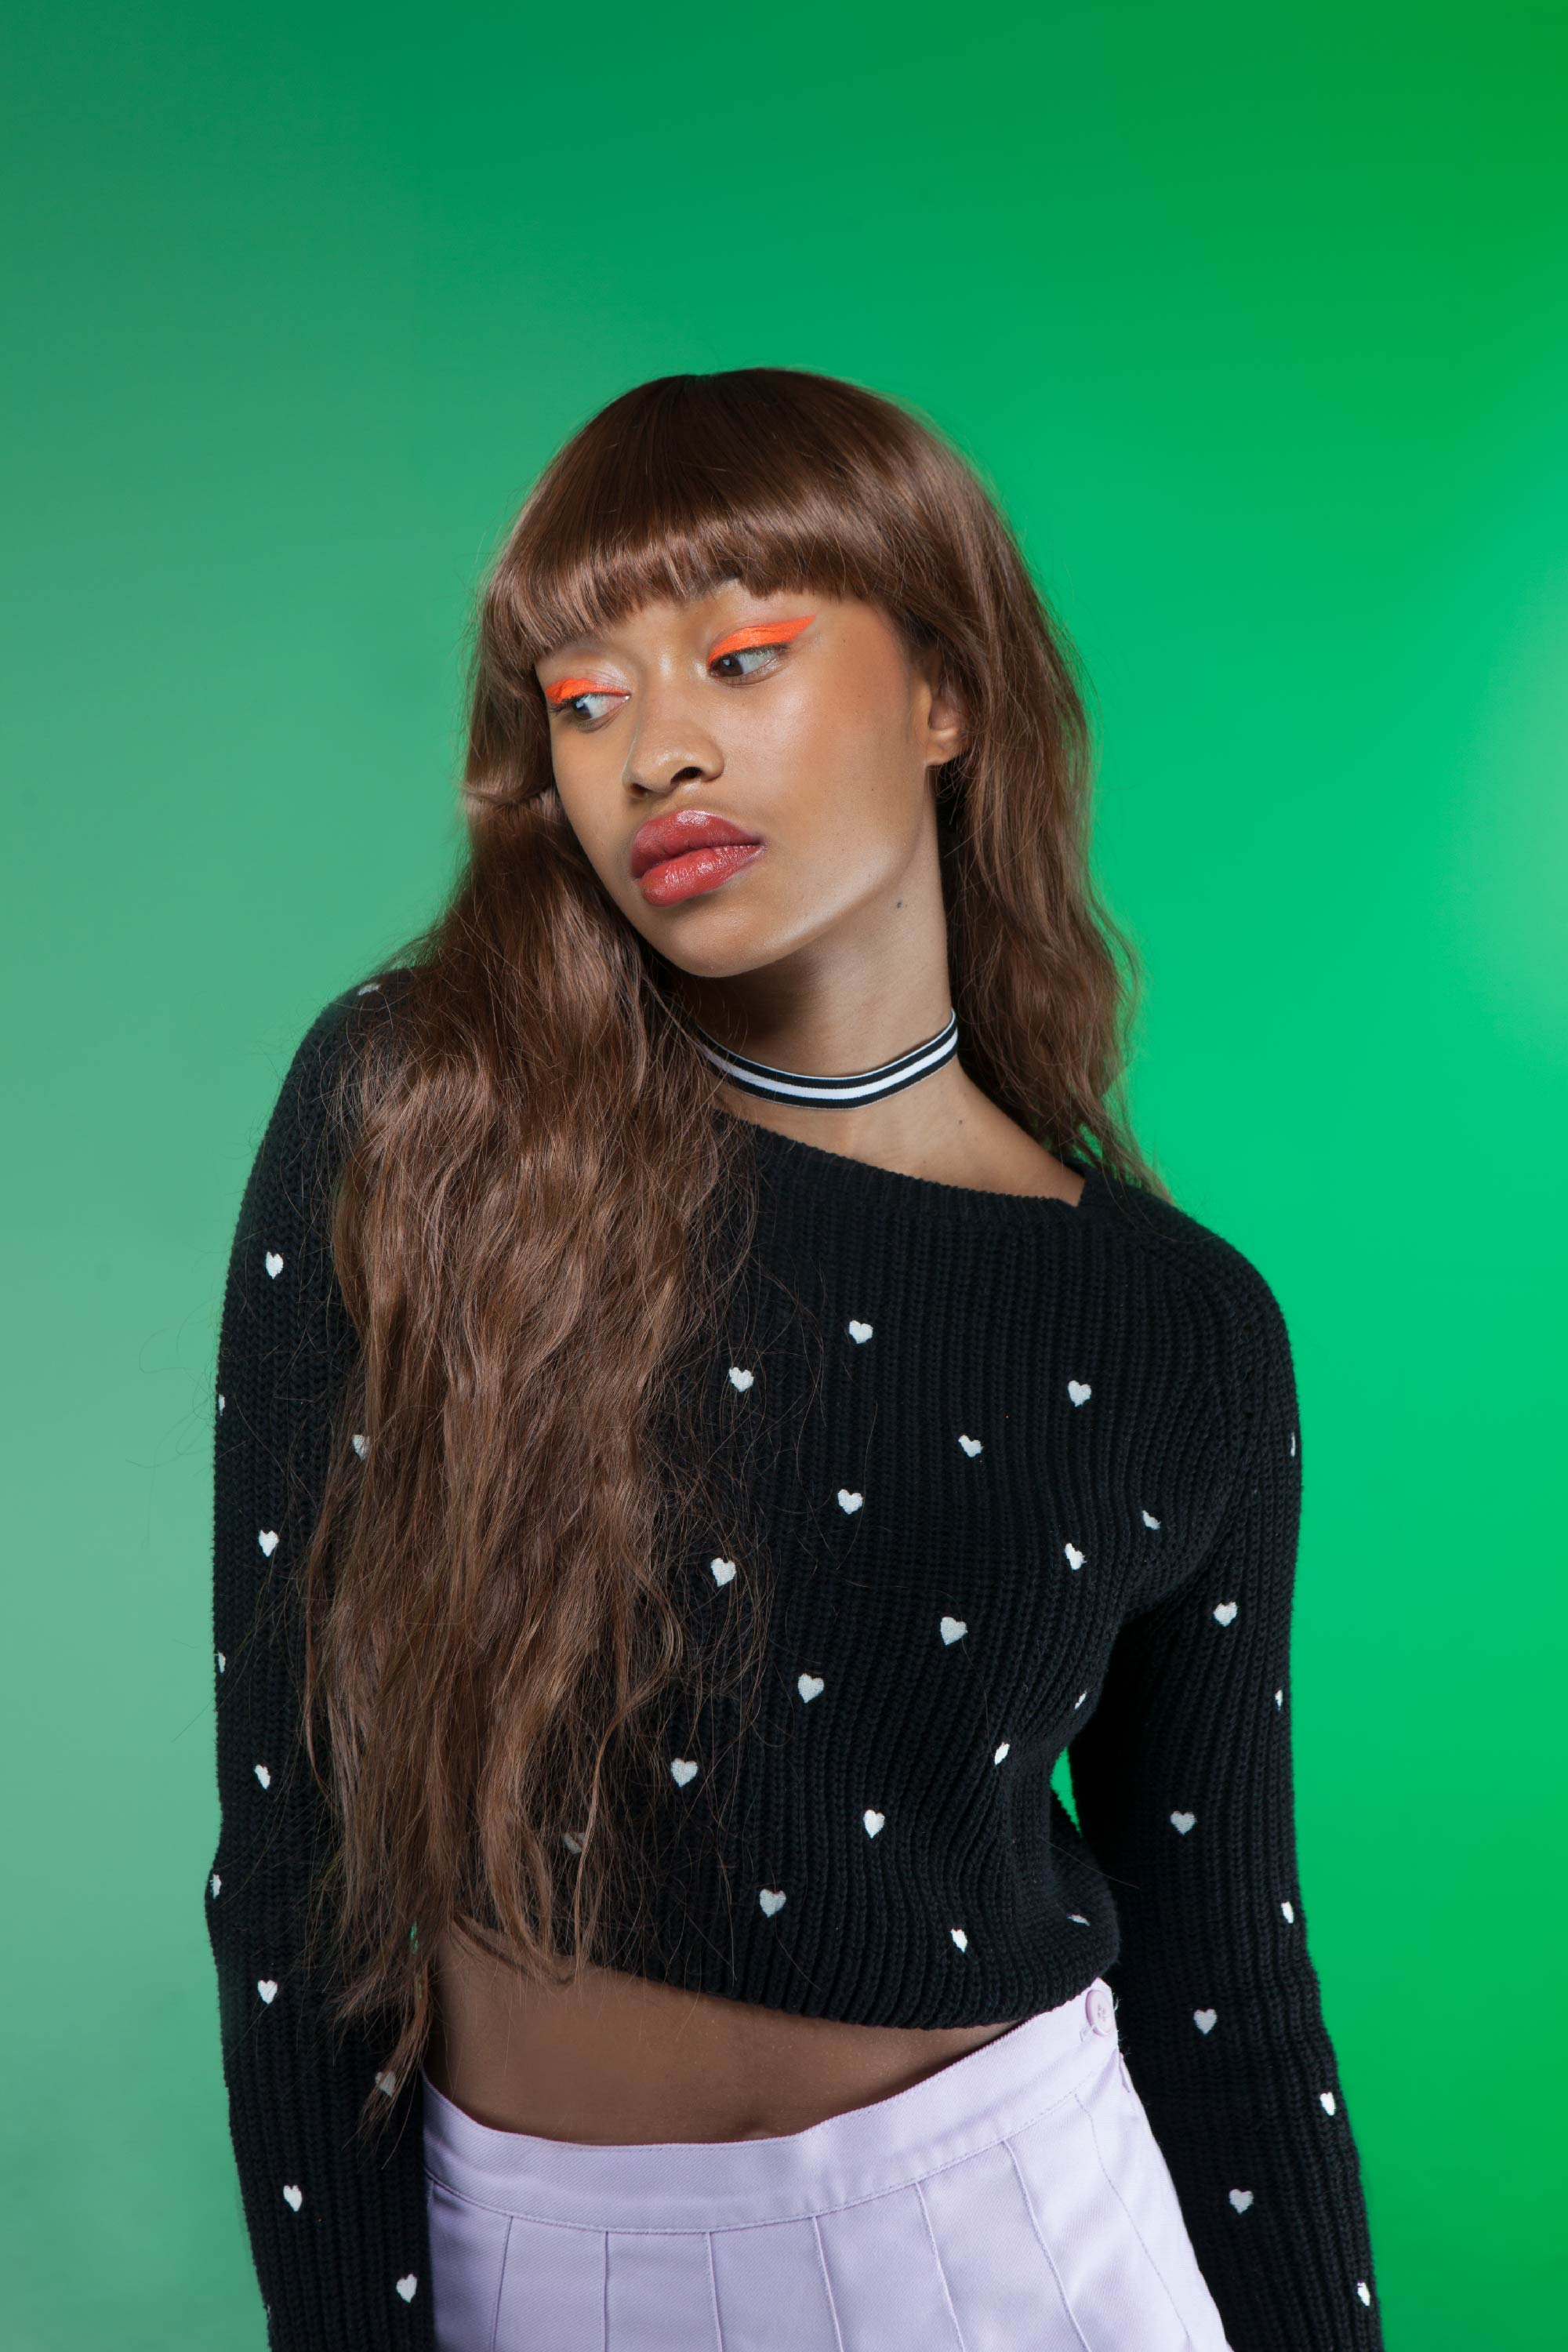 Makeup for profesional London photoshoot. Girl poses against a green studio background.